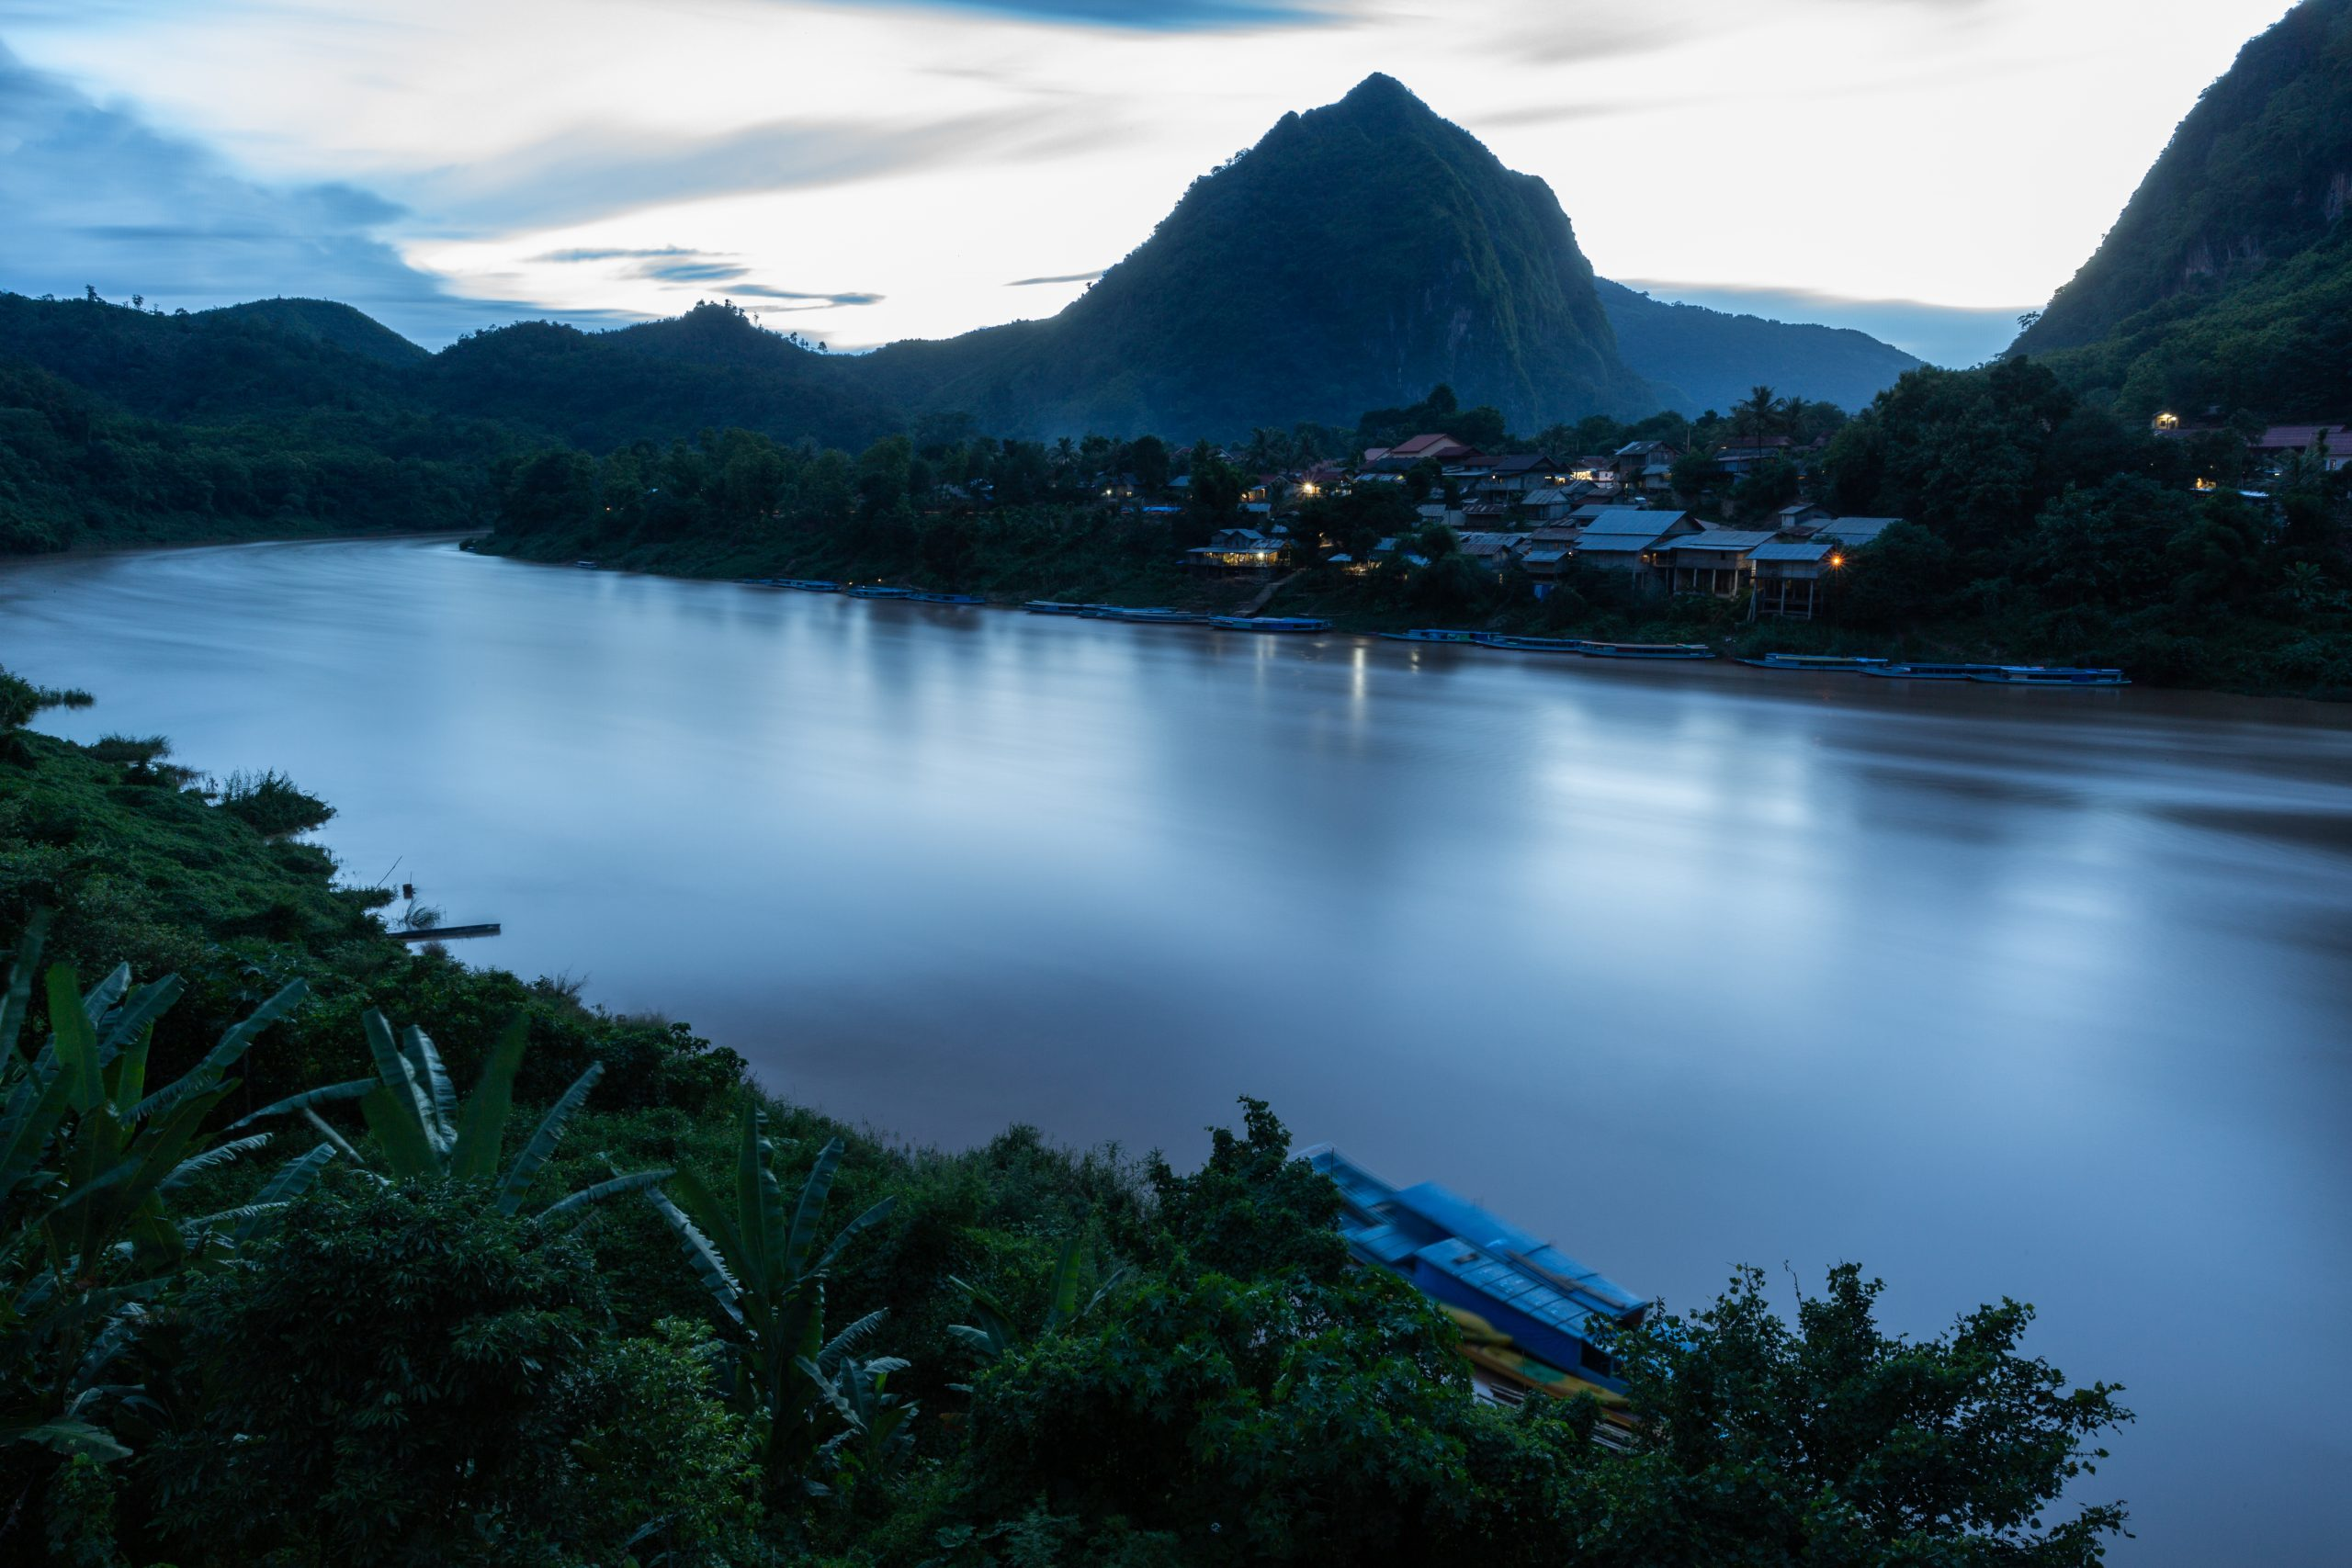 sunset on the Nam Ou River in Nong Khiaw, Laos